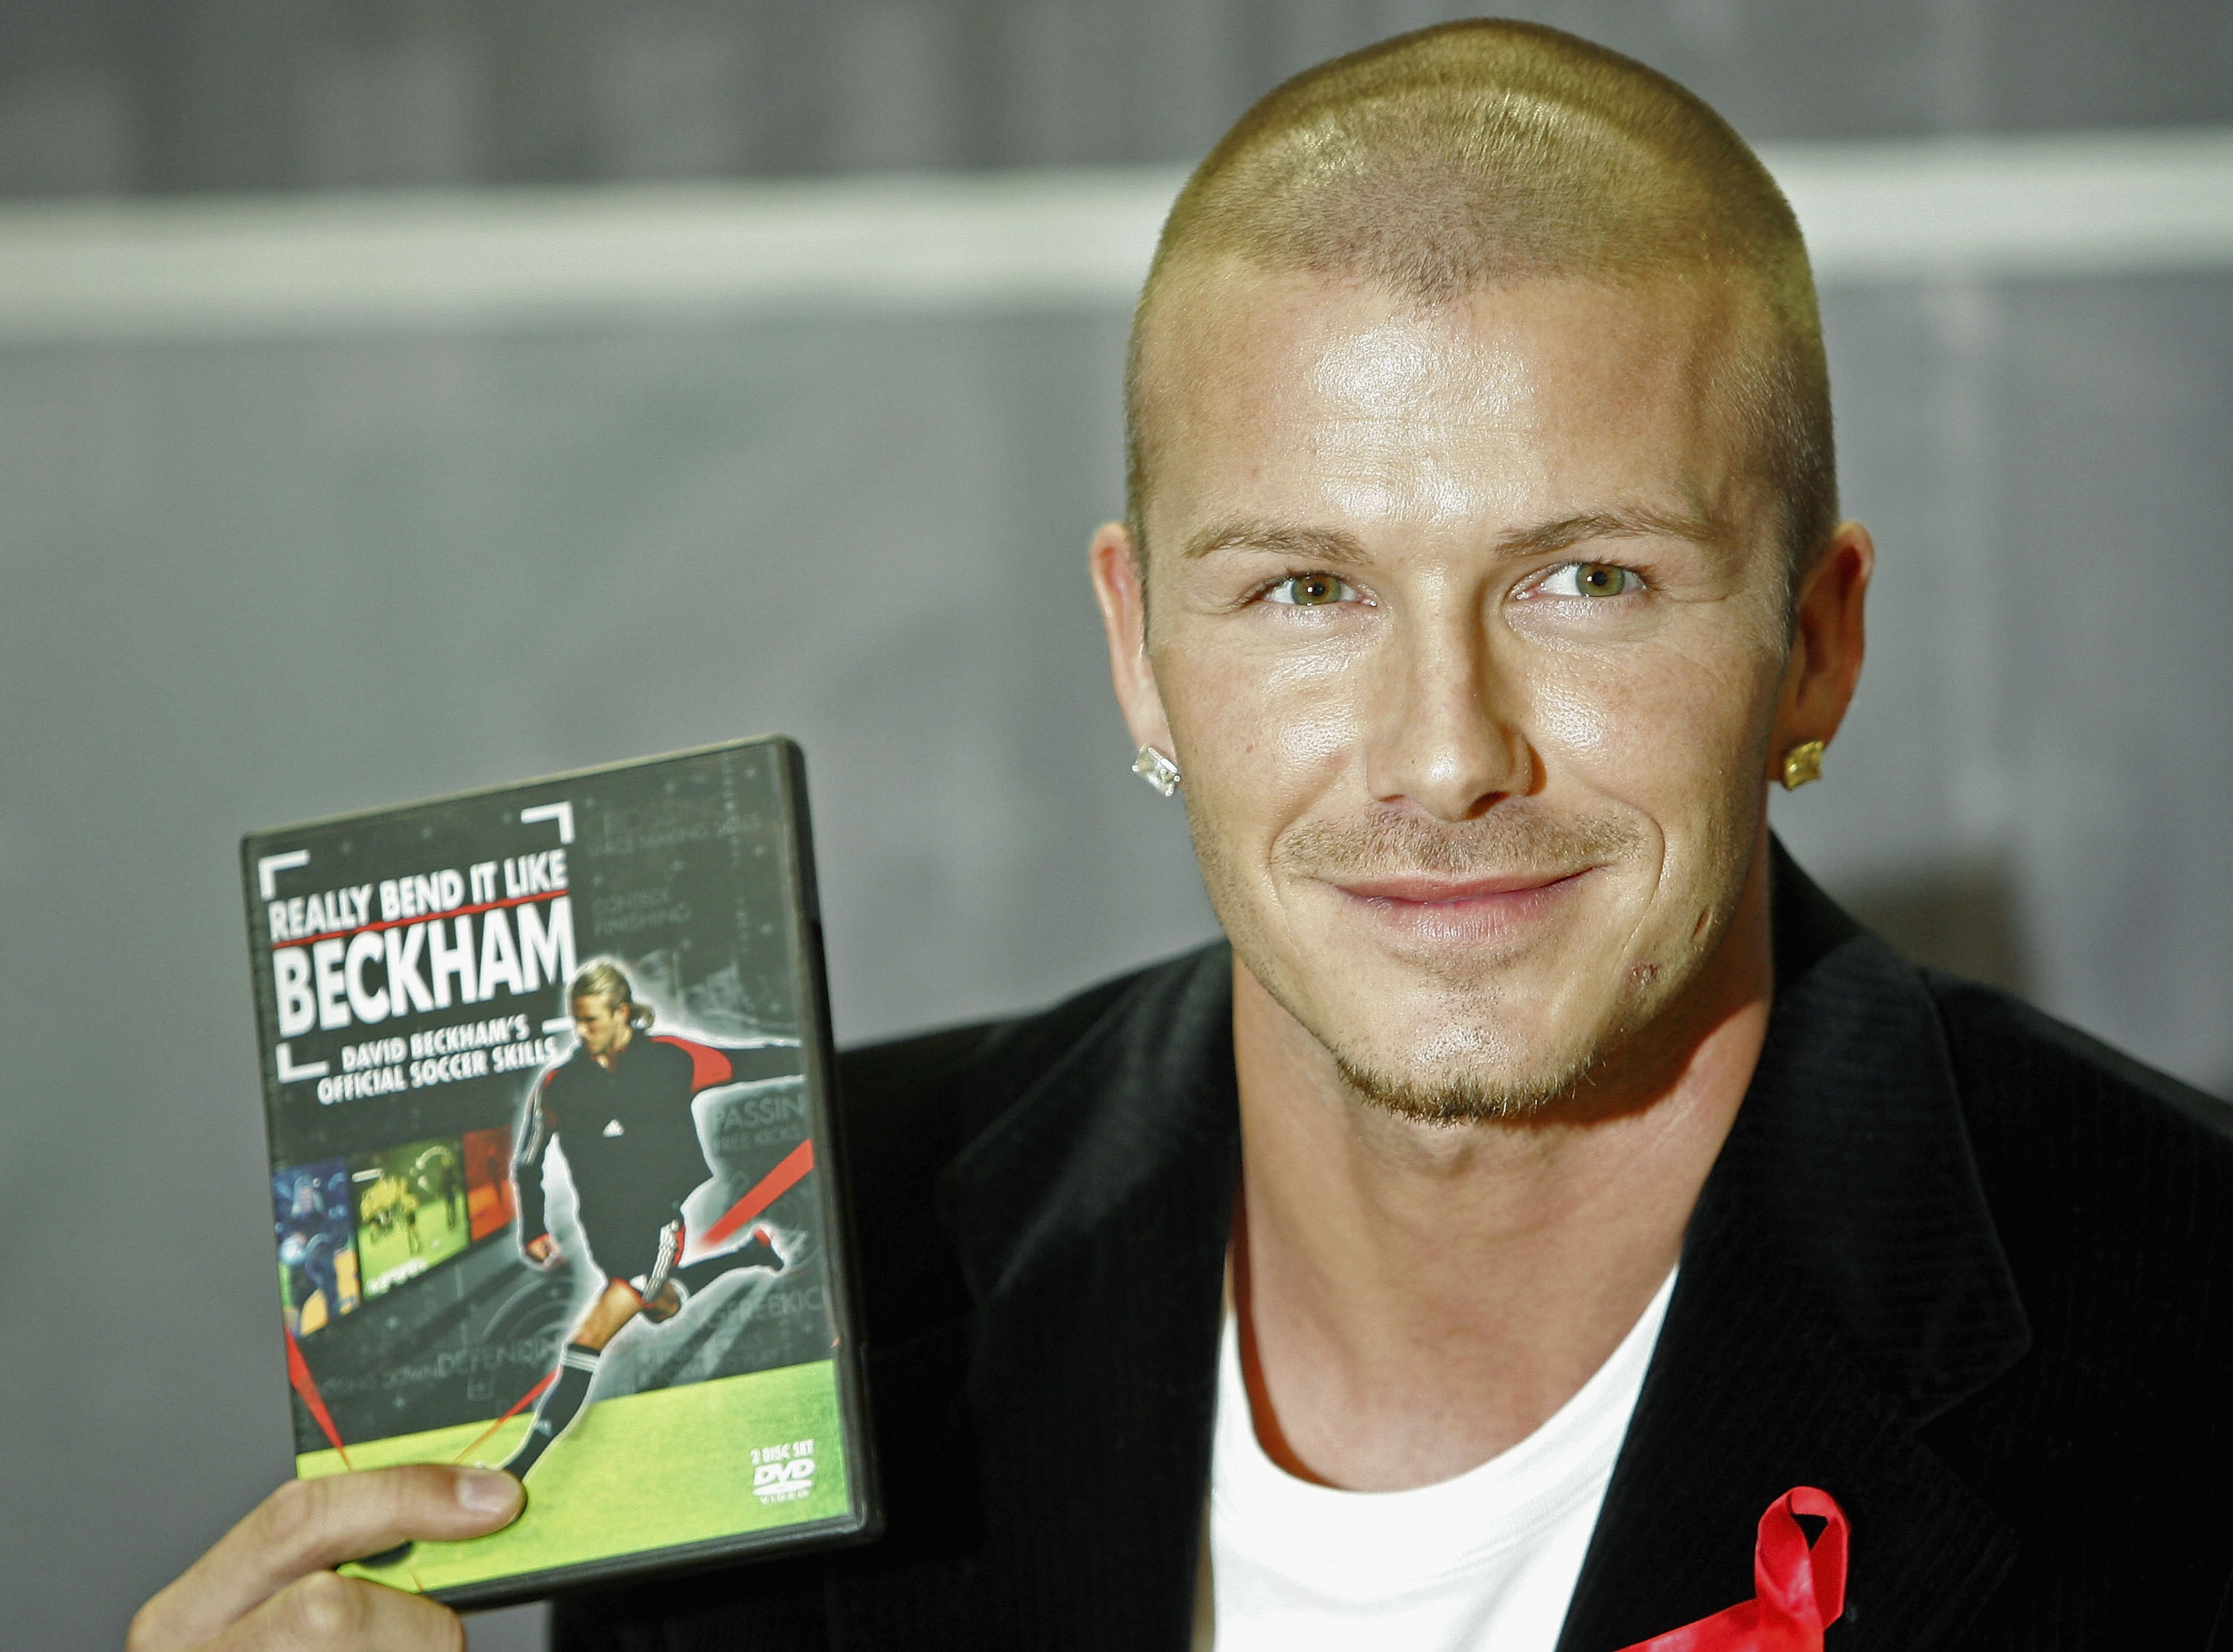 LONDON - DECEMBER 1:  Real Madrid and England footballer David Beckham promotes 'Really Bend It Like Beckham', his first official training skills DVD, at the Virgin Megastore, Oxford Street on December 1, 2004 in London. (Photo by MJ Kim/Getty Images)